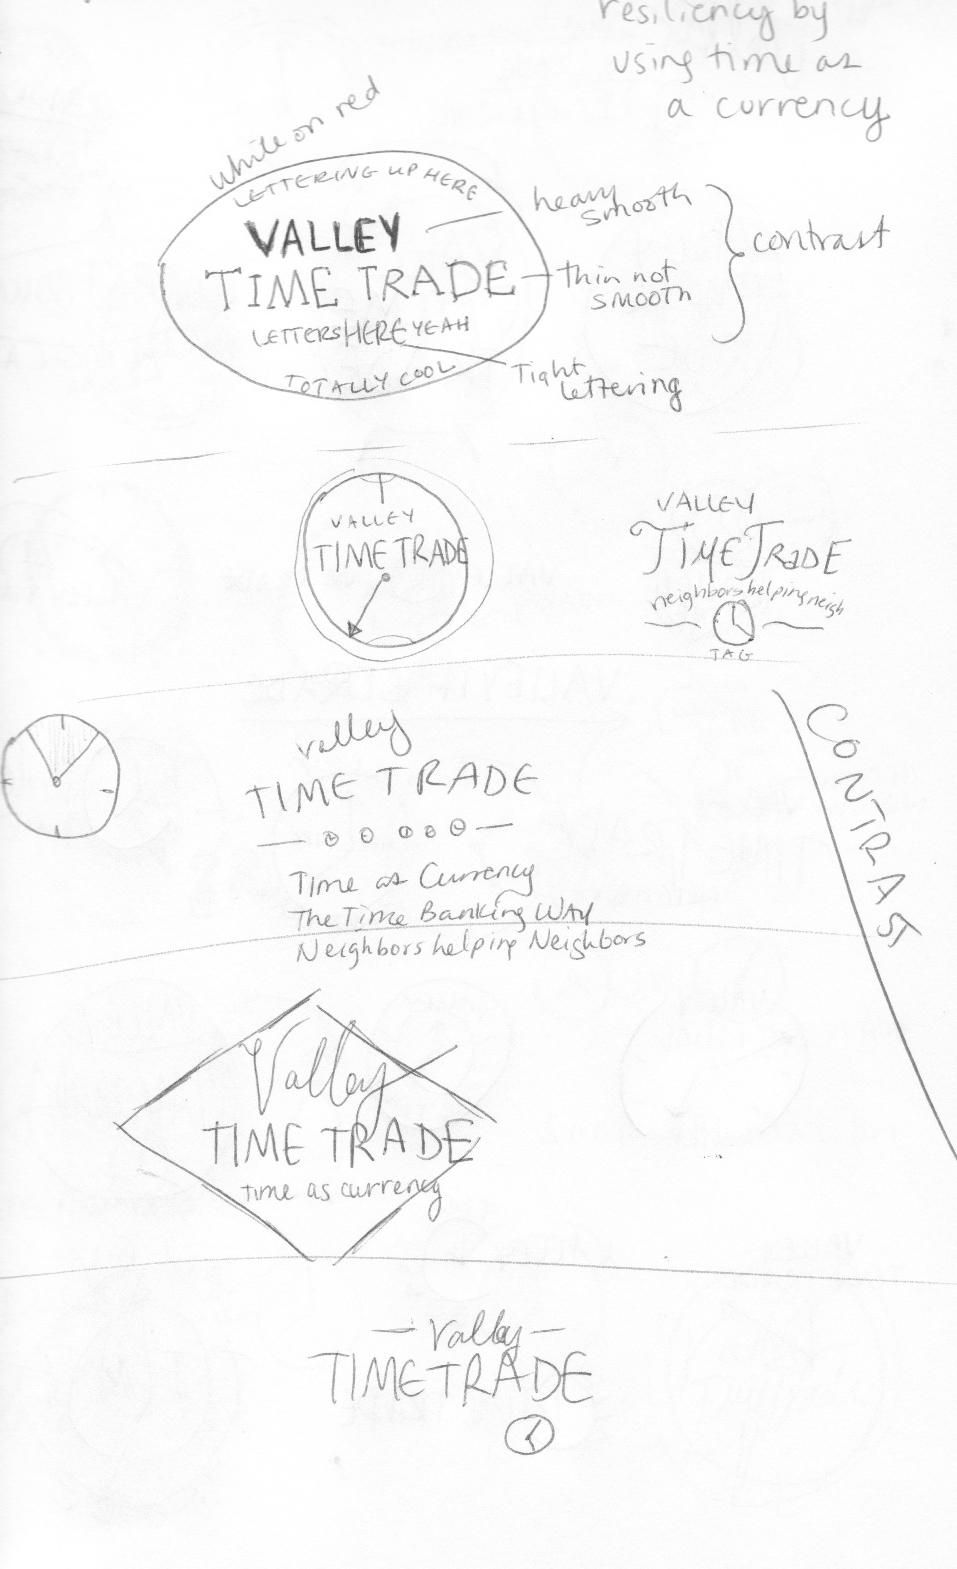 Valley Time Trade - image 6 - student project